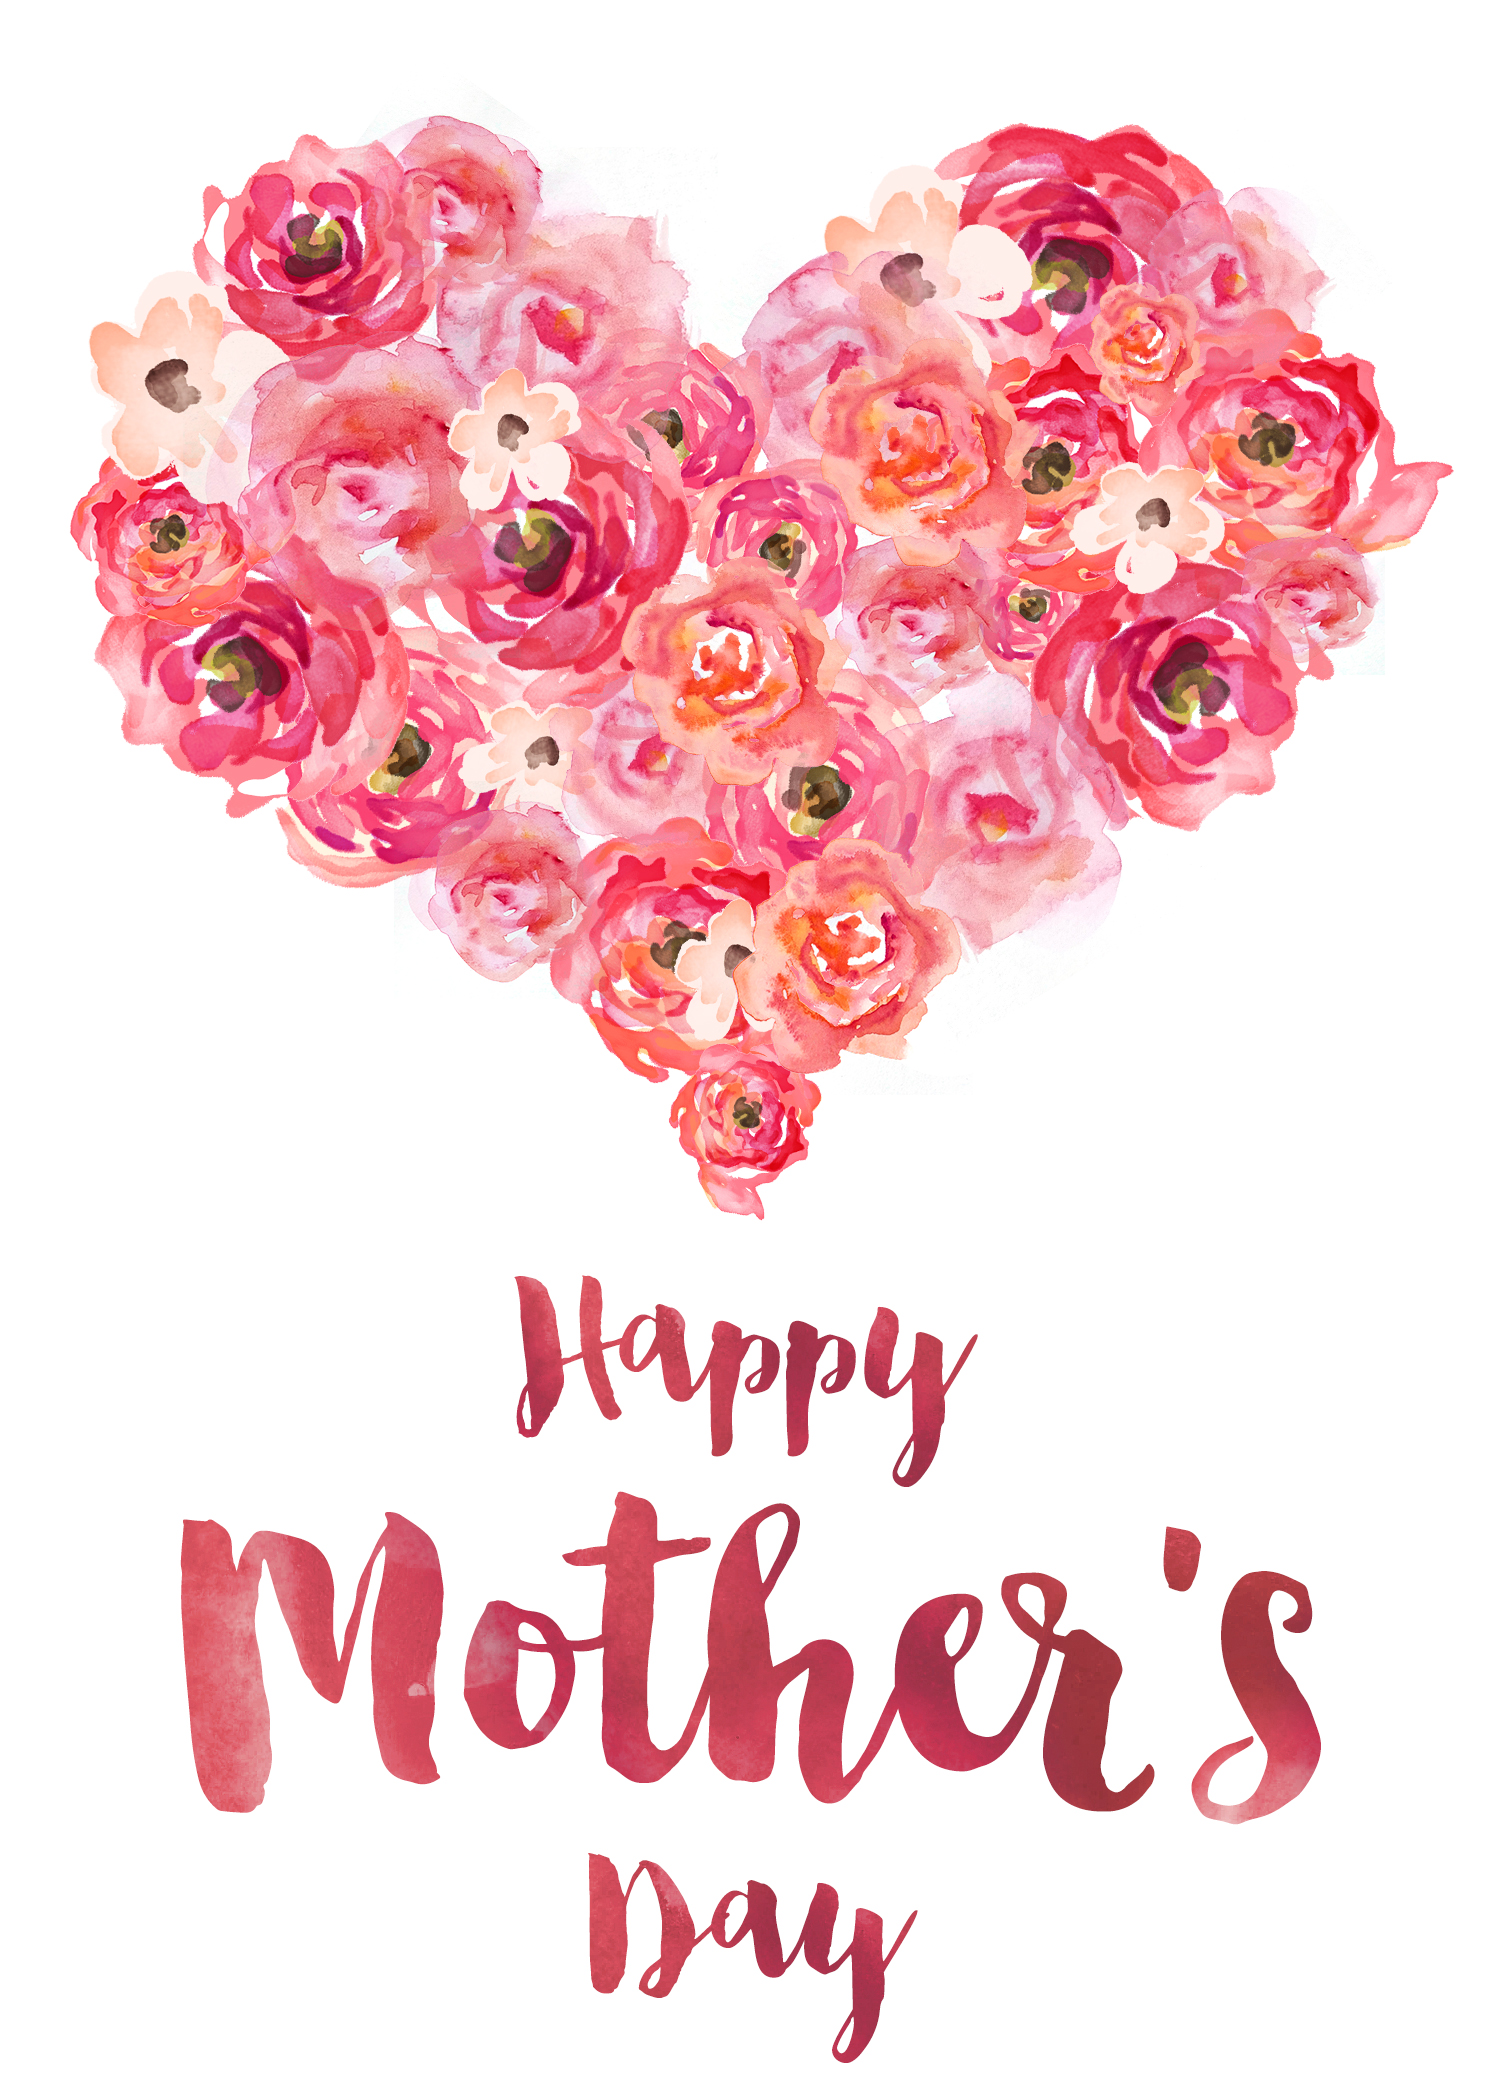 Happy Mothers Day Mom In Heaven Images